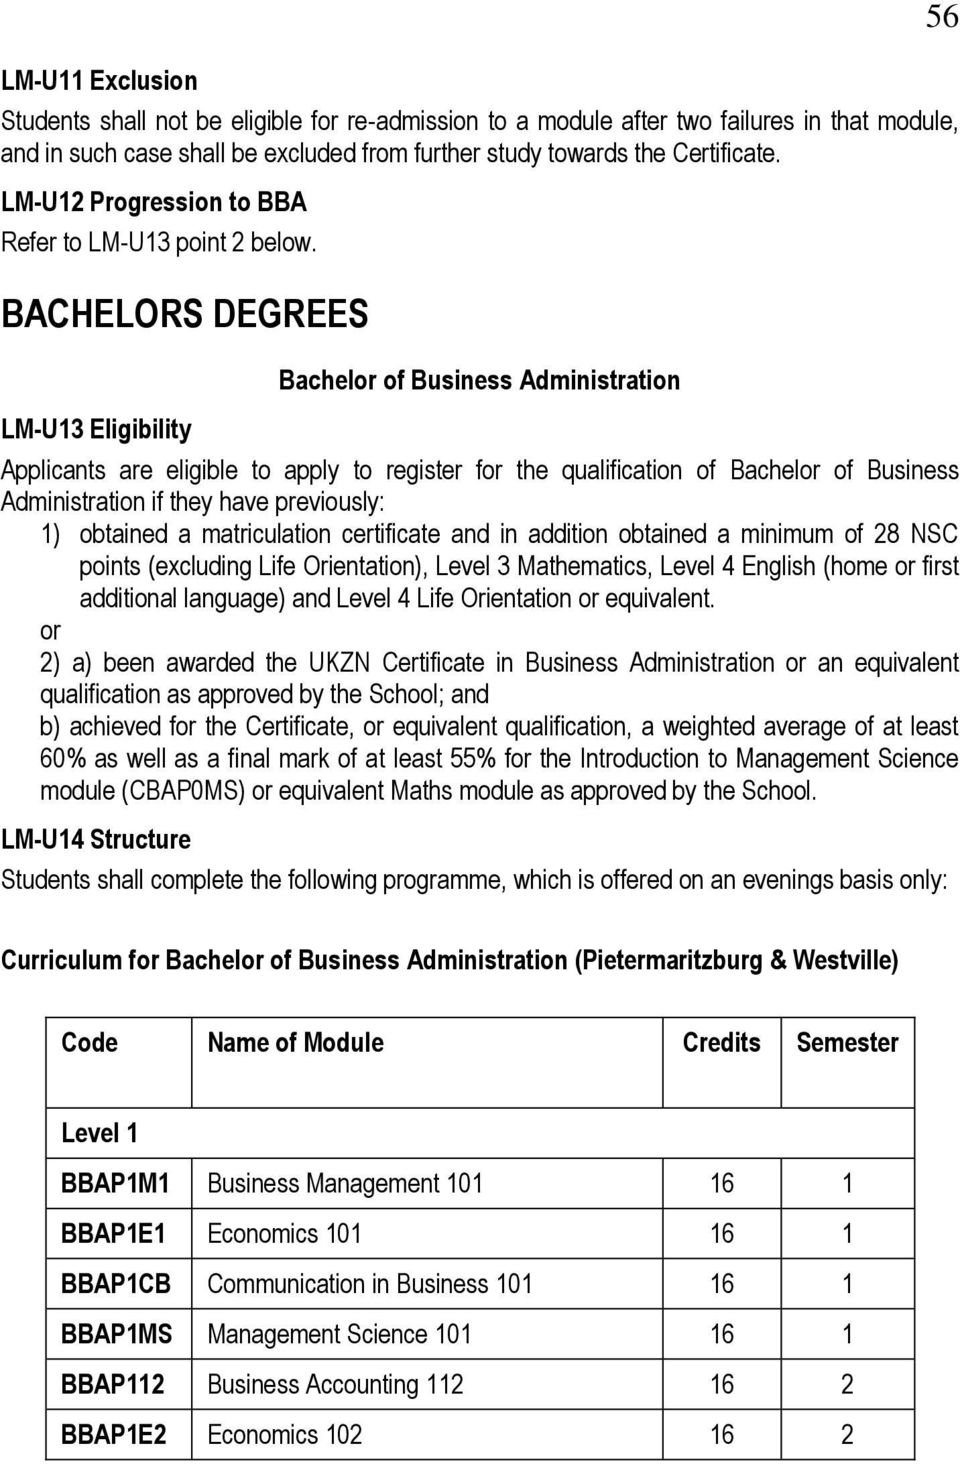 BACHELORS DEGREES LM-U13 Eligibility Bachel of Business Administration Applicants are eligible to apply to register f the qualification of Bachel of Business Administration if they have previously: